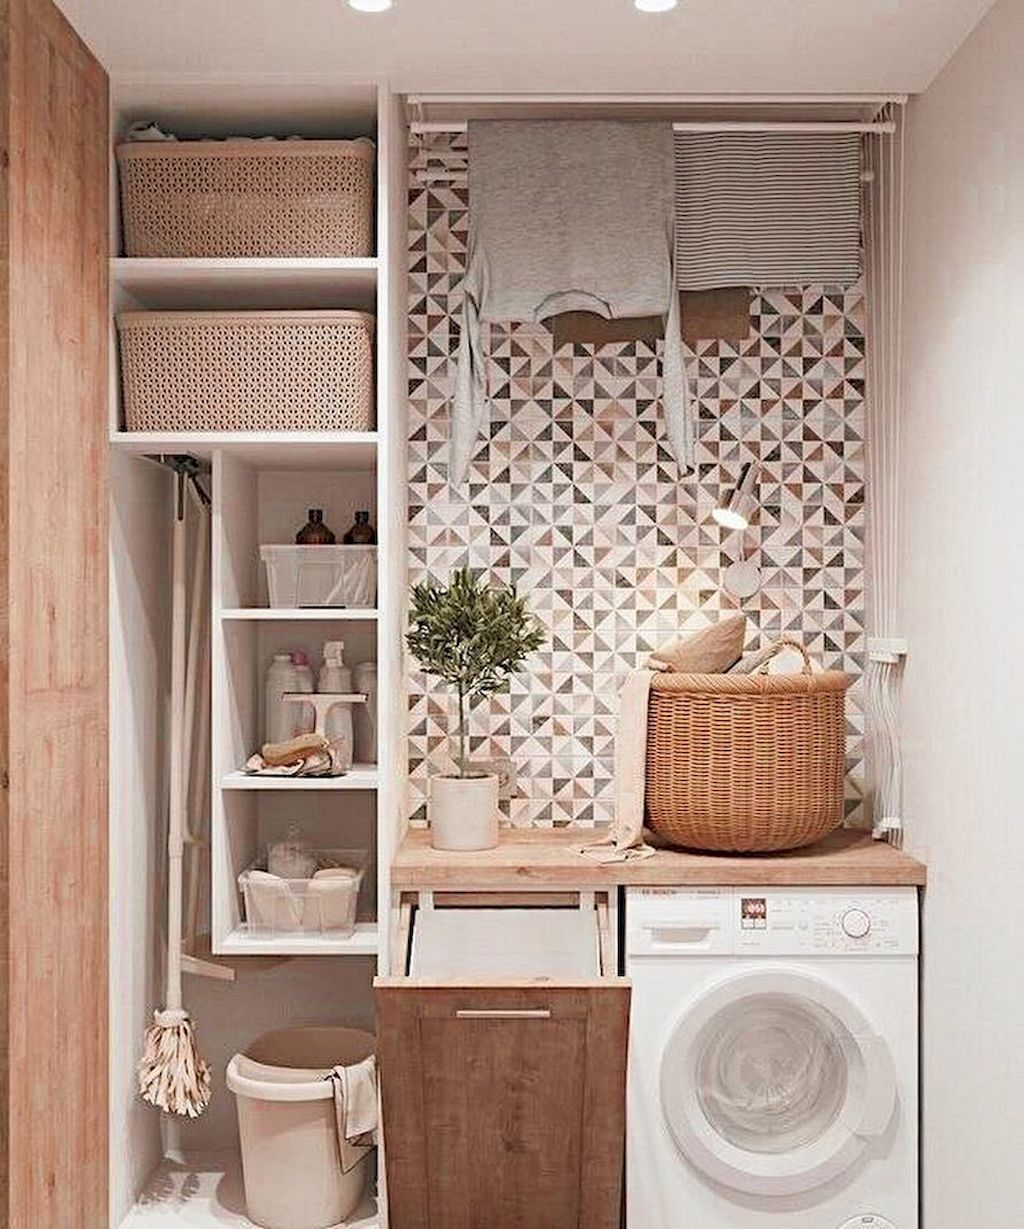 Ravishing Condense the Mess within the Laundry Room With These Suggestions images